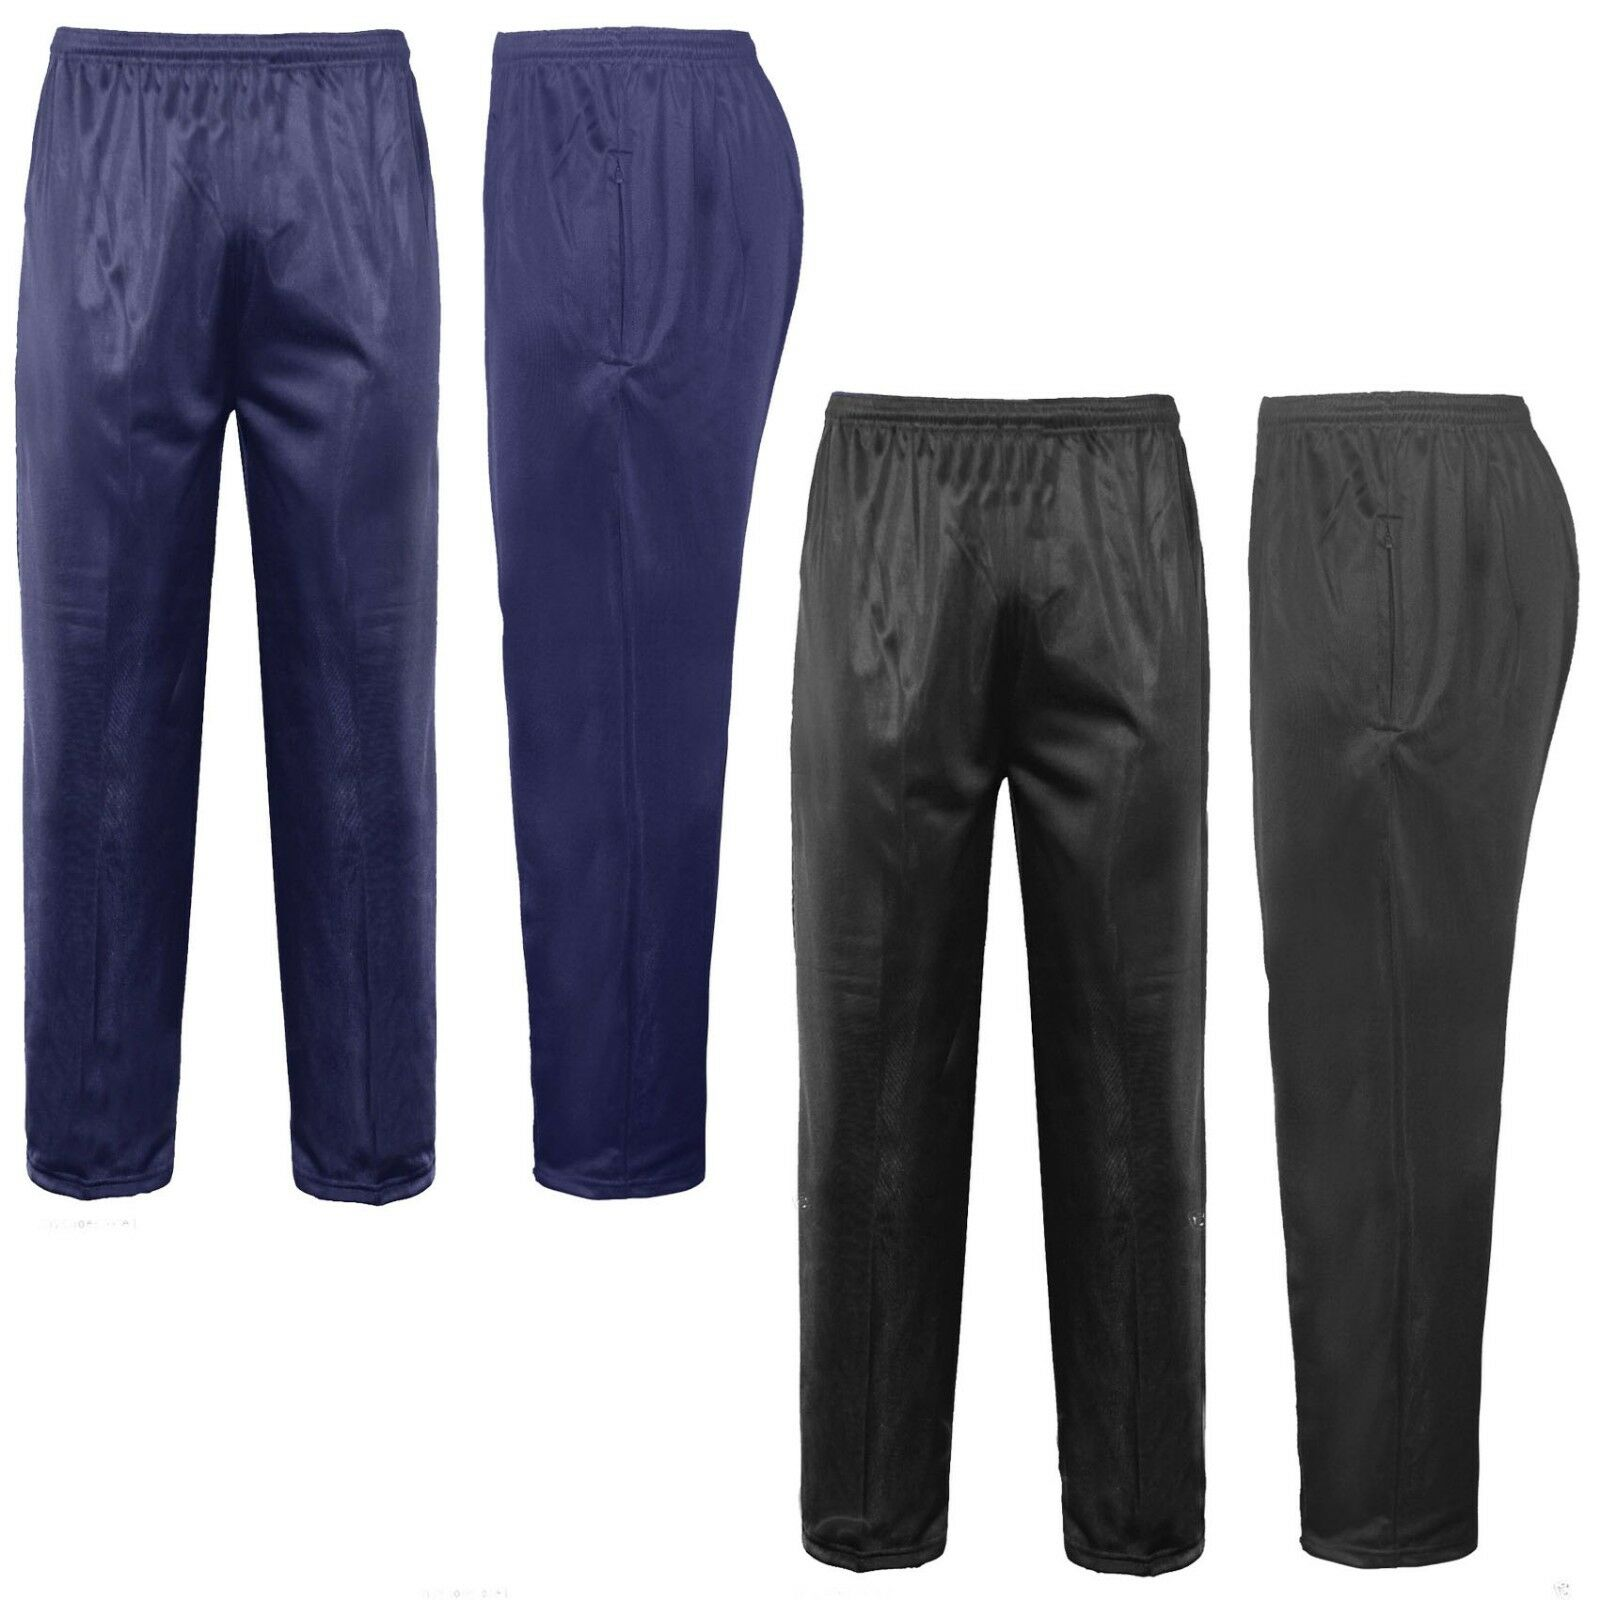 Mens New Silky Work Wear Gym Casual Tracksuit Track Bottoms Pants Trousers S-5XL